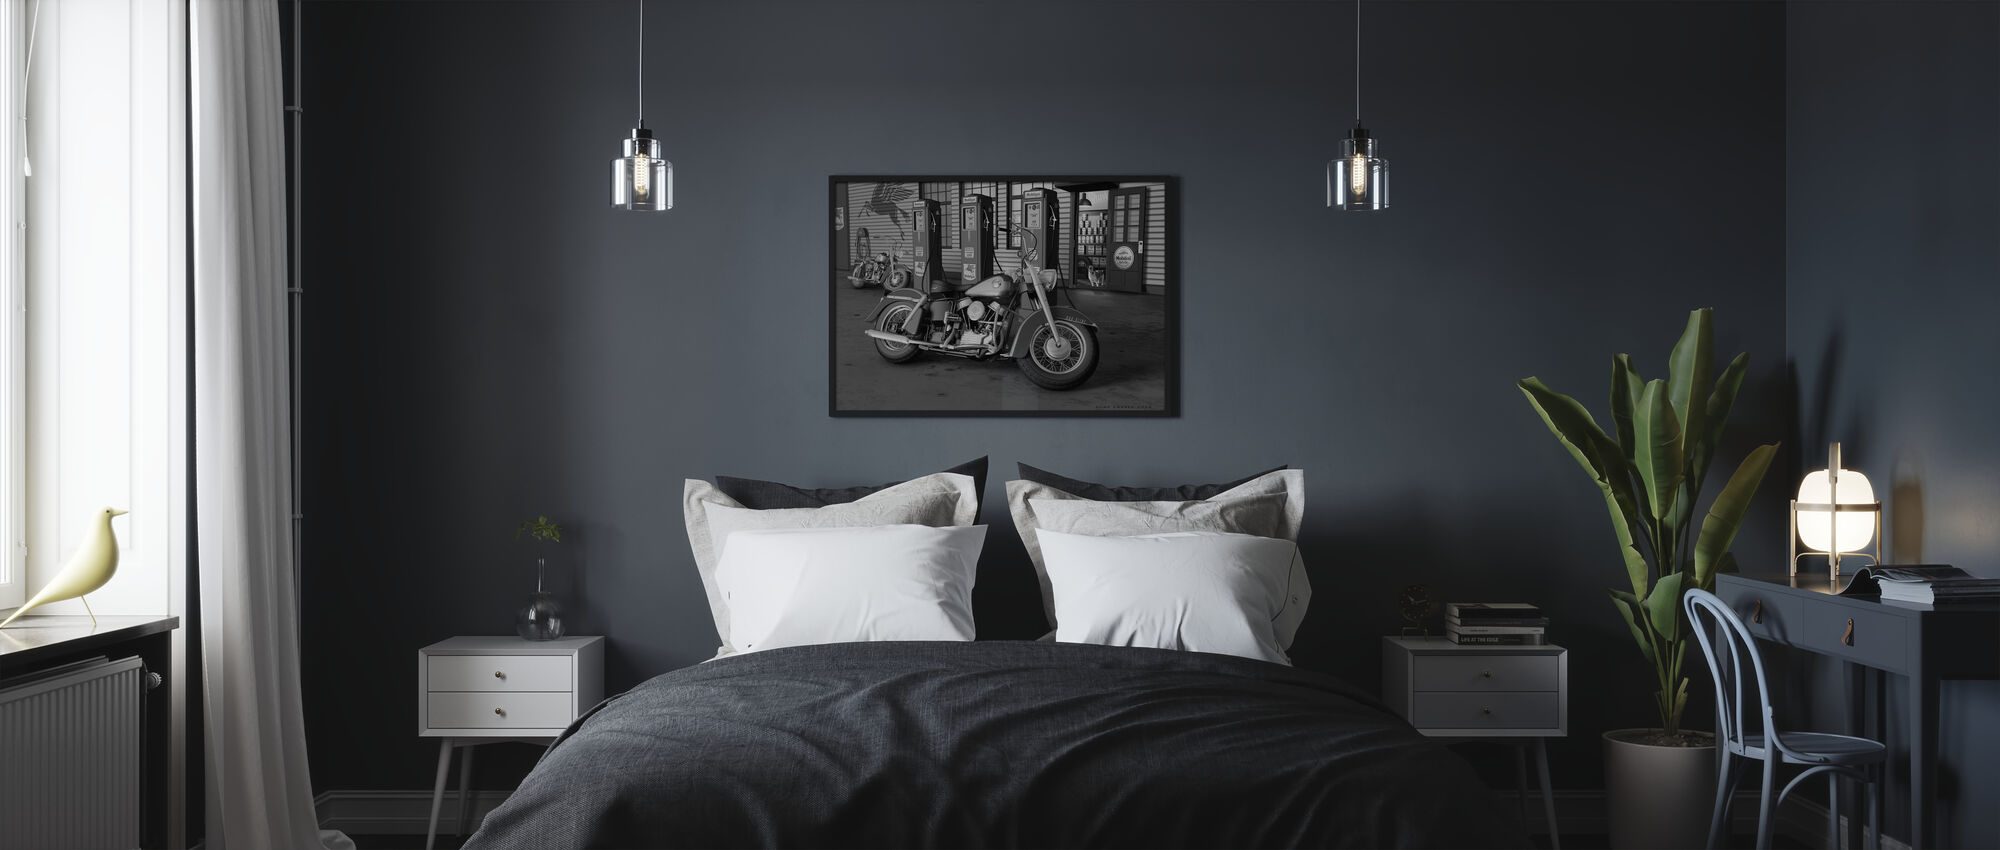 Twilight Dogs BW - Poster - Bedroom